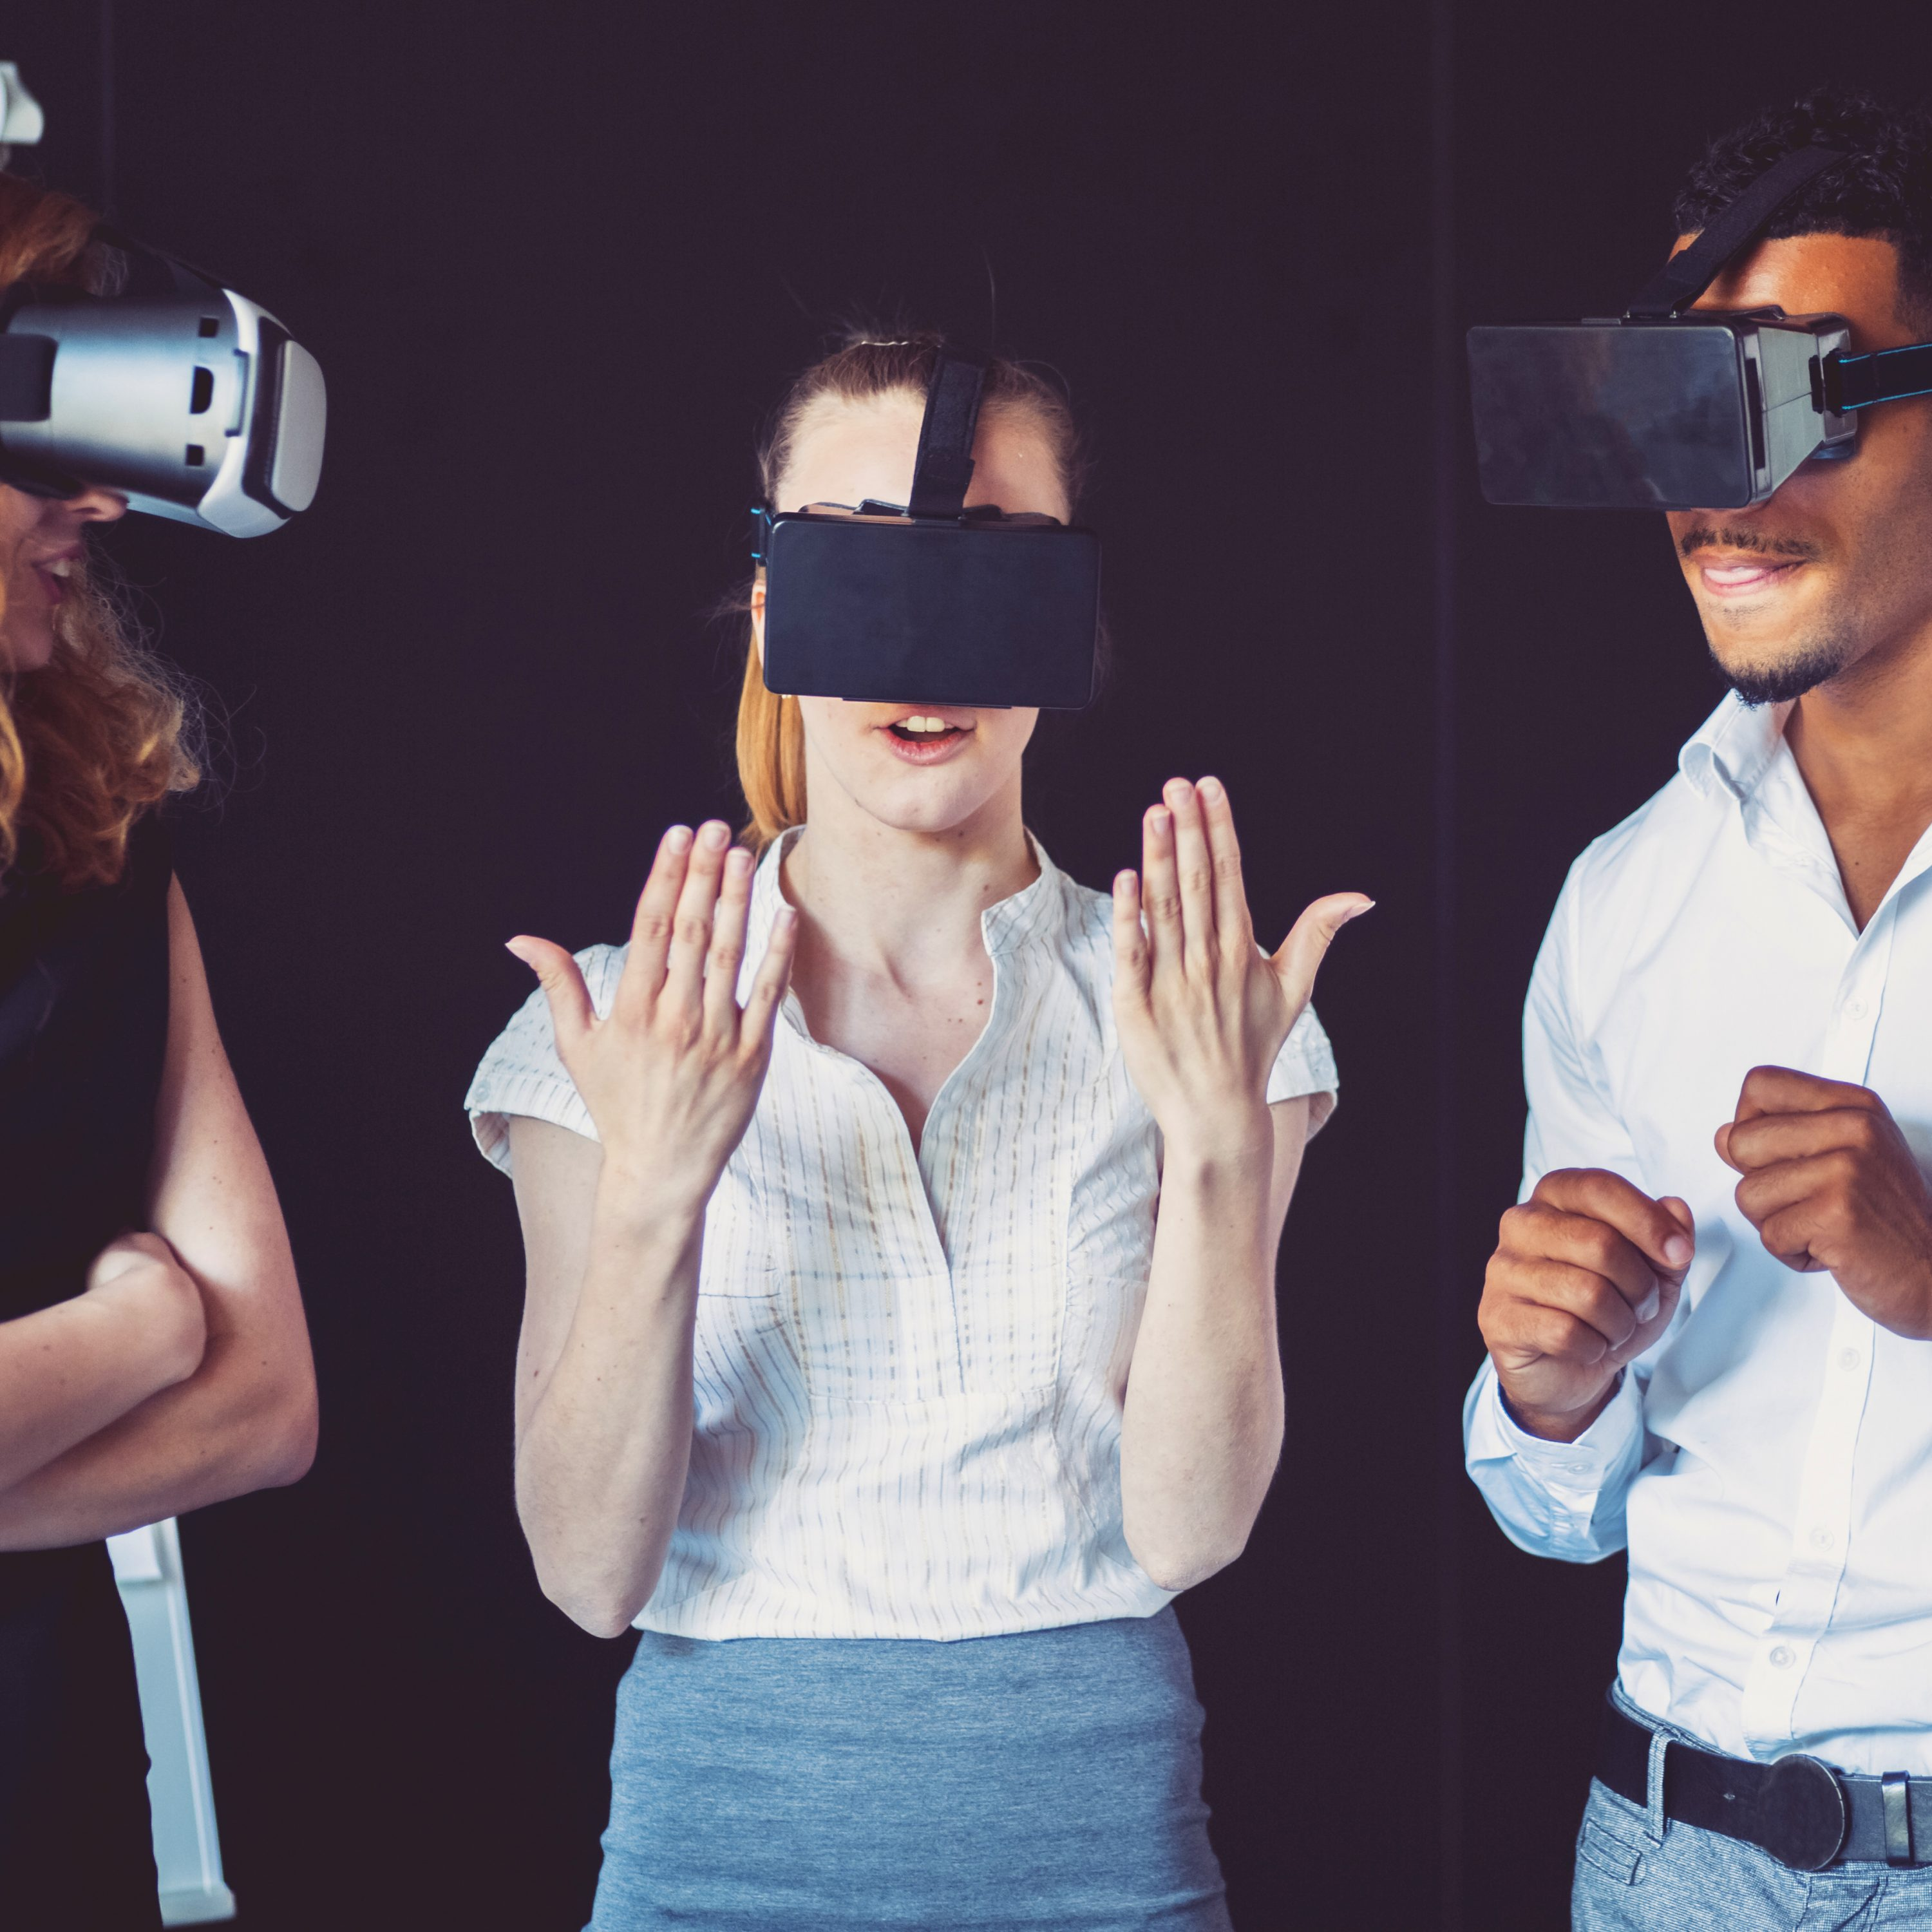 Business team using virtual reality headset in the office.